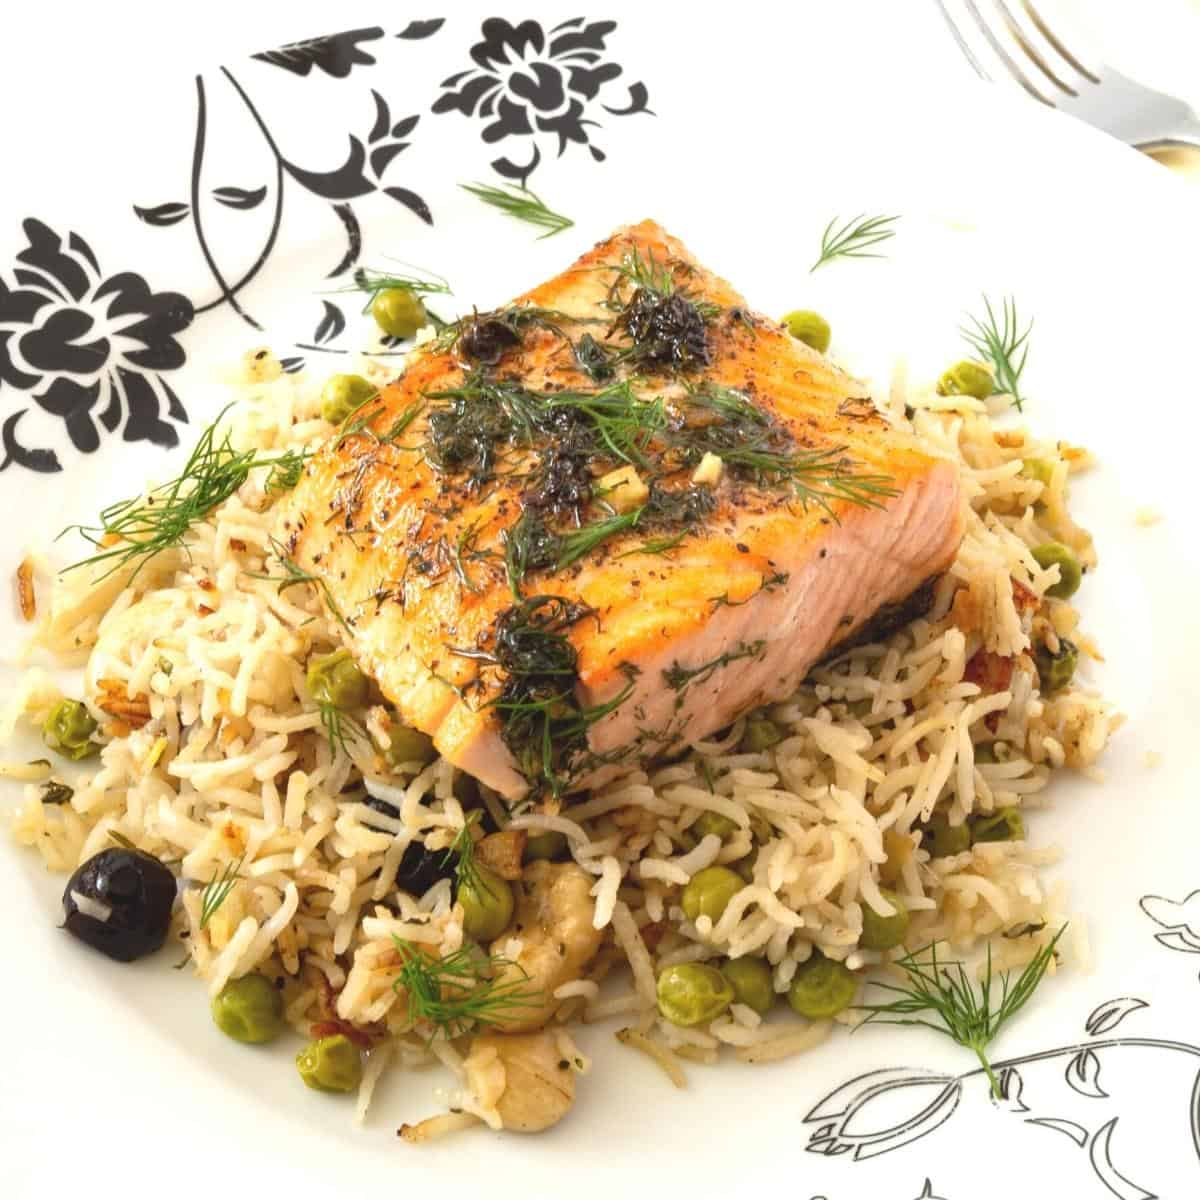 A white plate with basmati rice and salmon fillet.